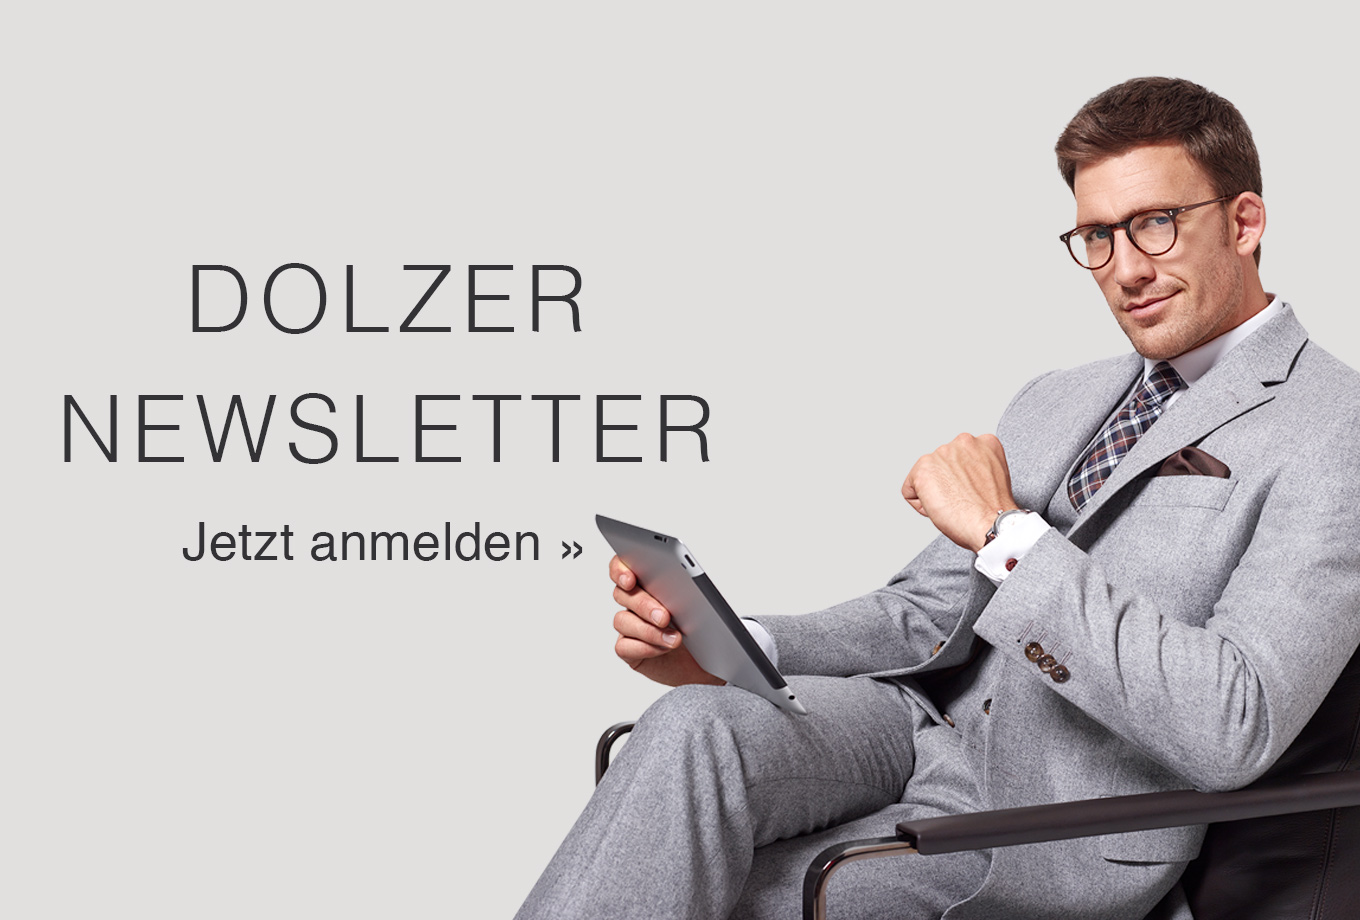 Dolzer Newsletter